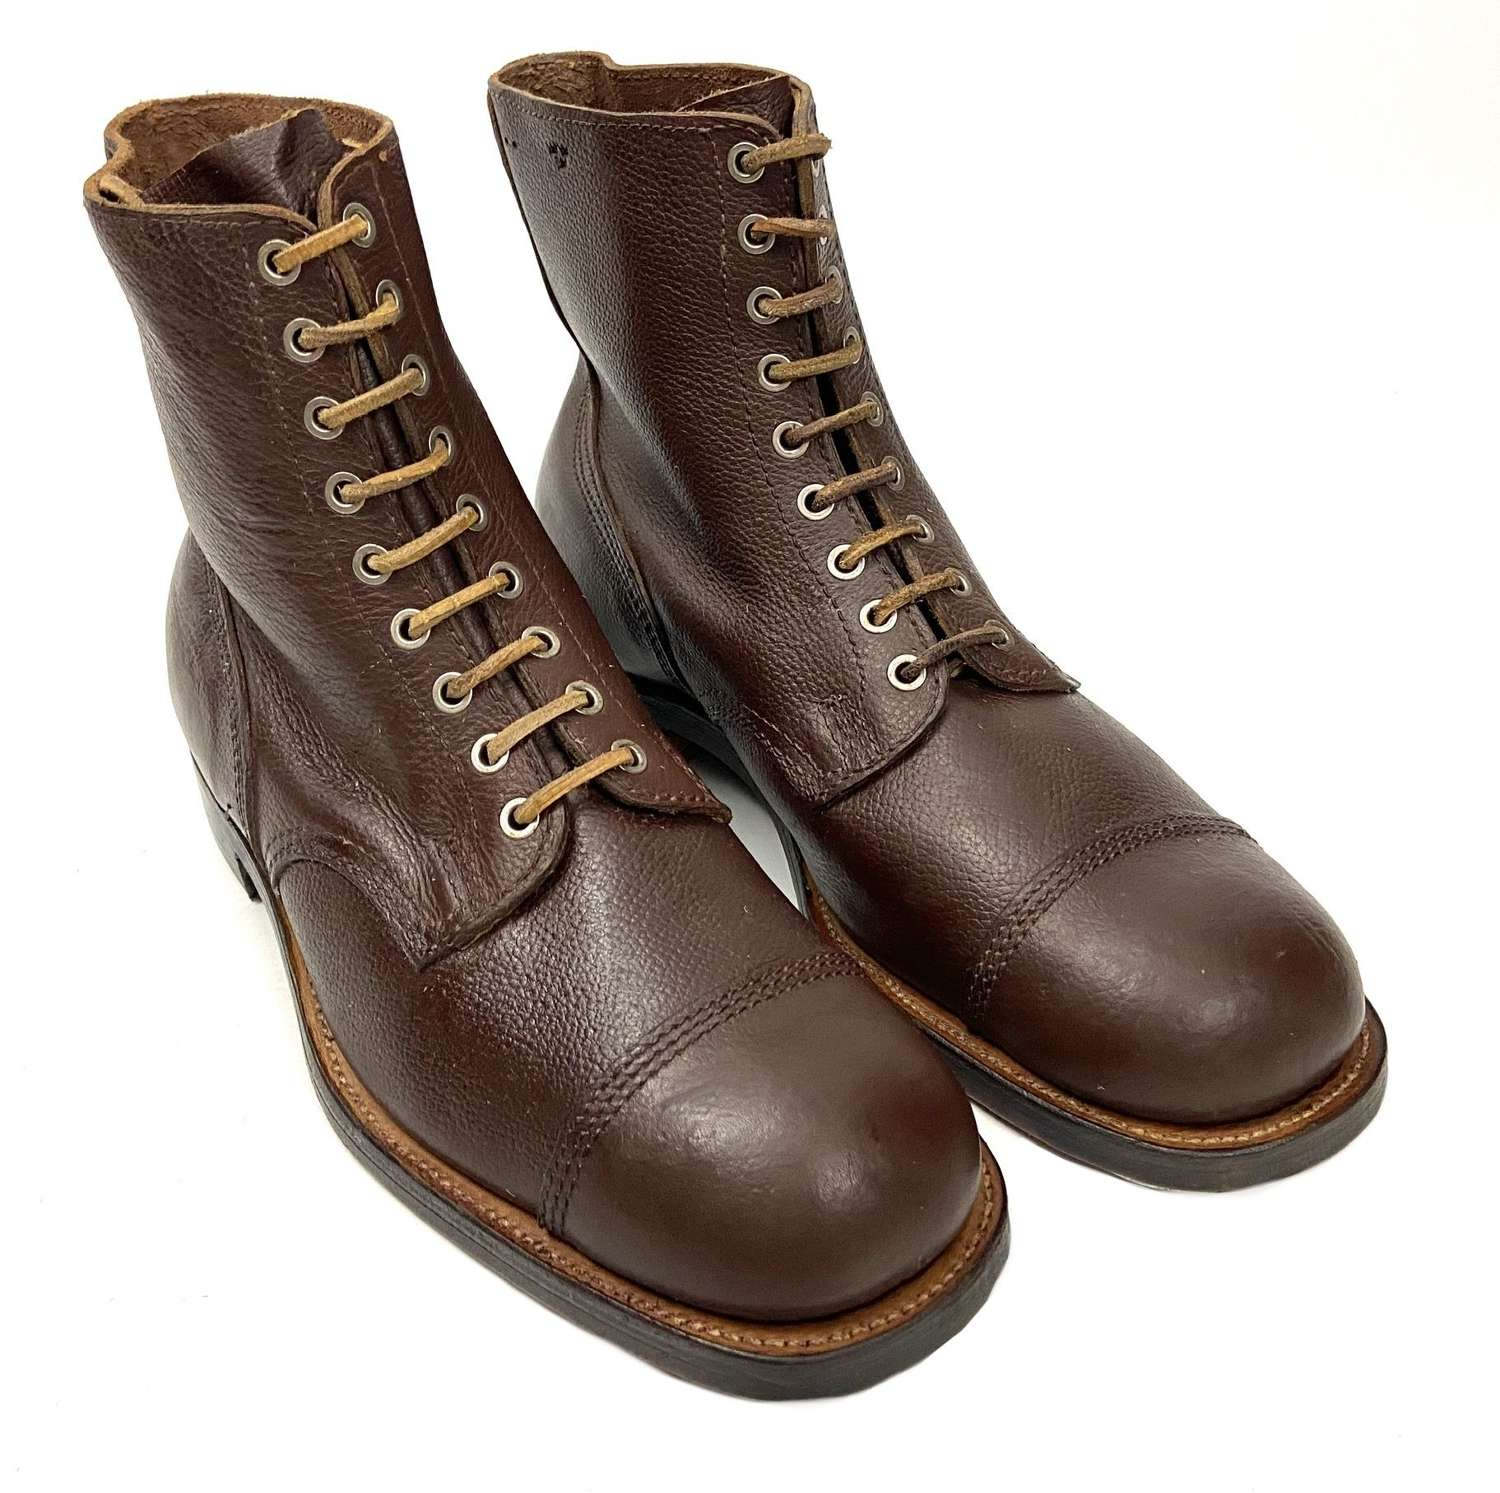 Original 1945 Dated Swedish Army Brown Leather Ankle Boots - Size 10